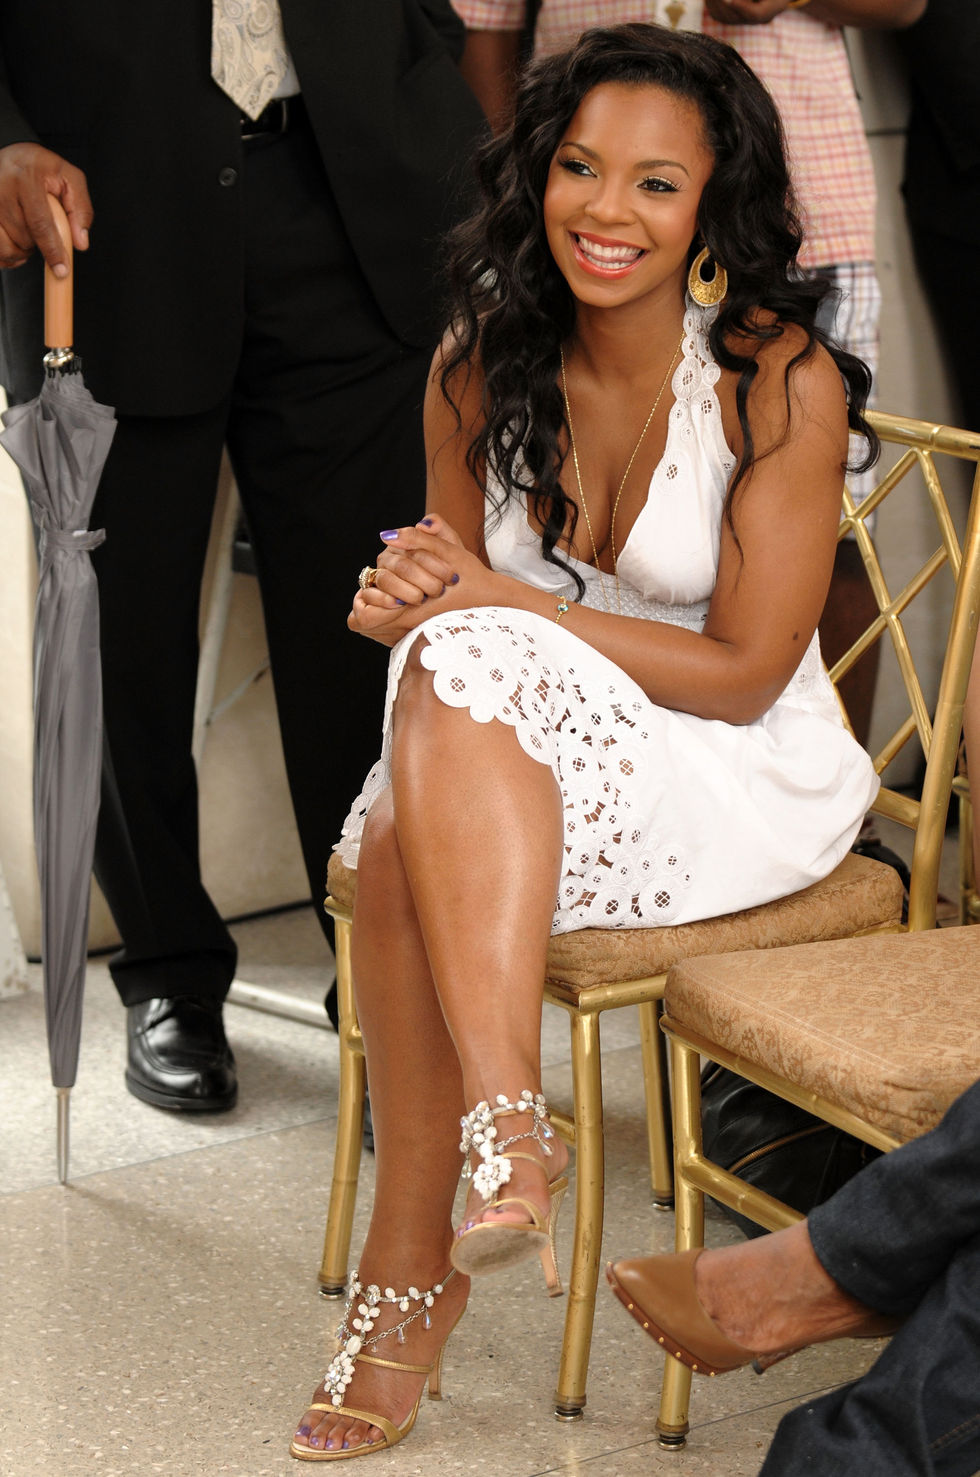 ashanti-nassau-countys-tourism-campaign-launch-in-new-york-city-01